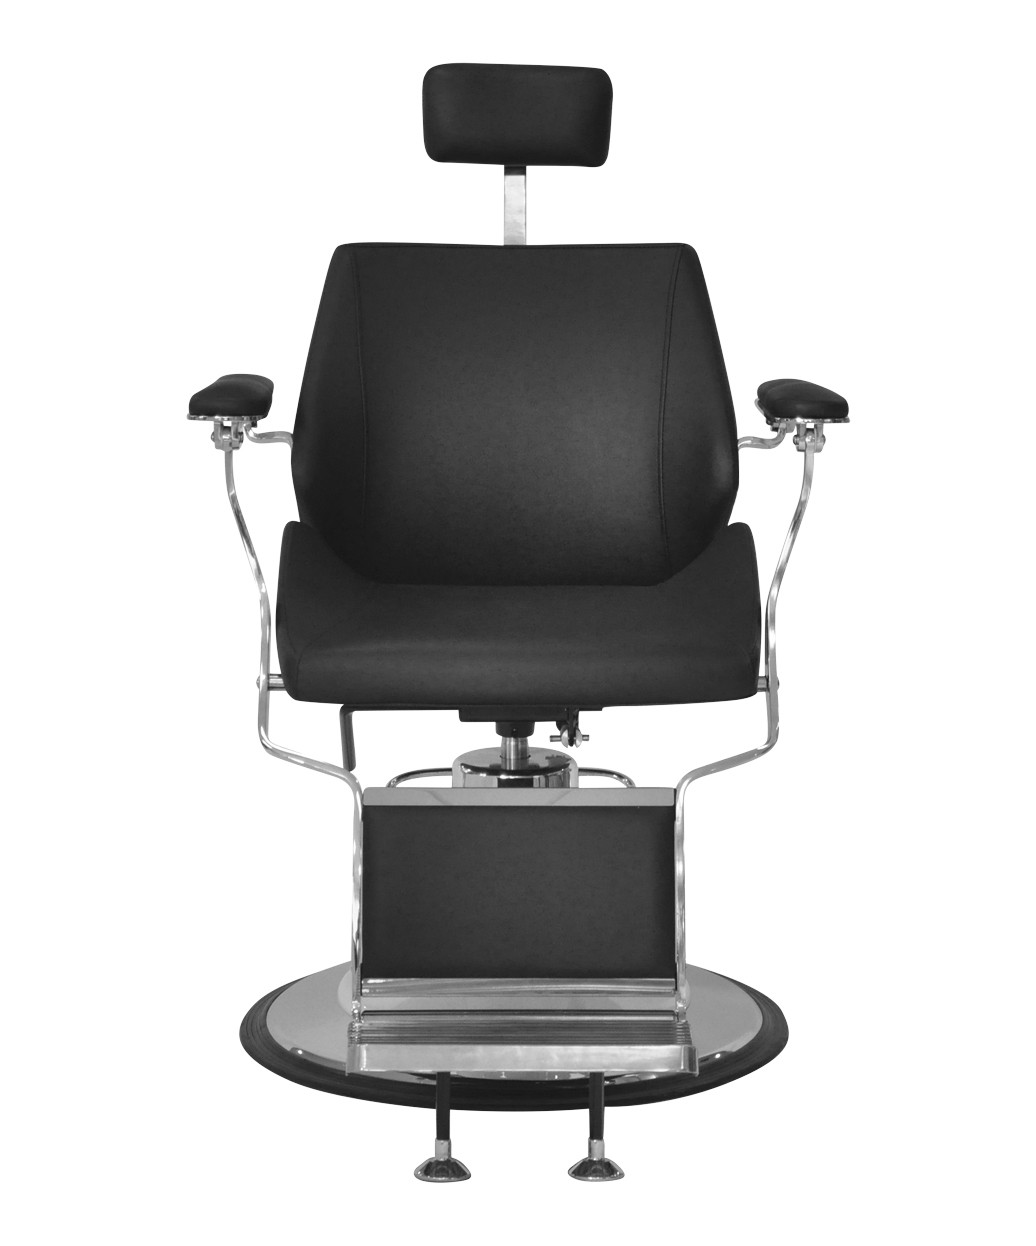 Belvedere Kami Unisex Barber Chair